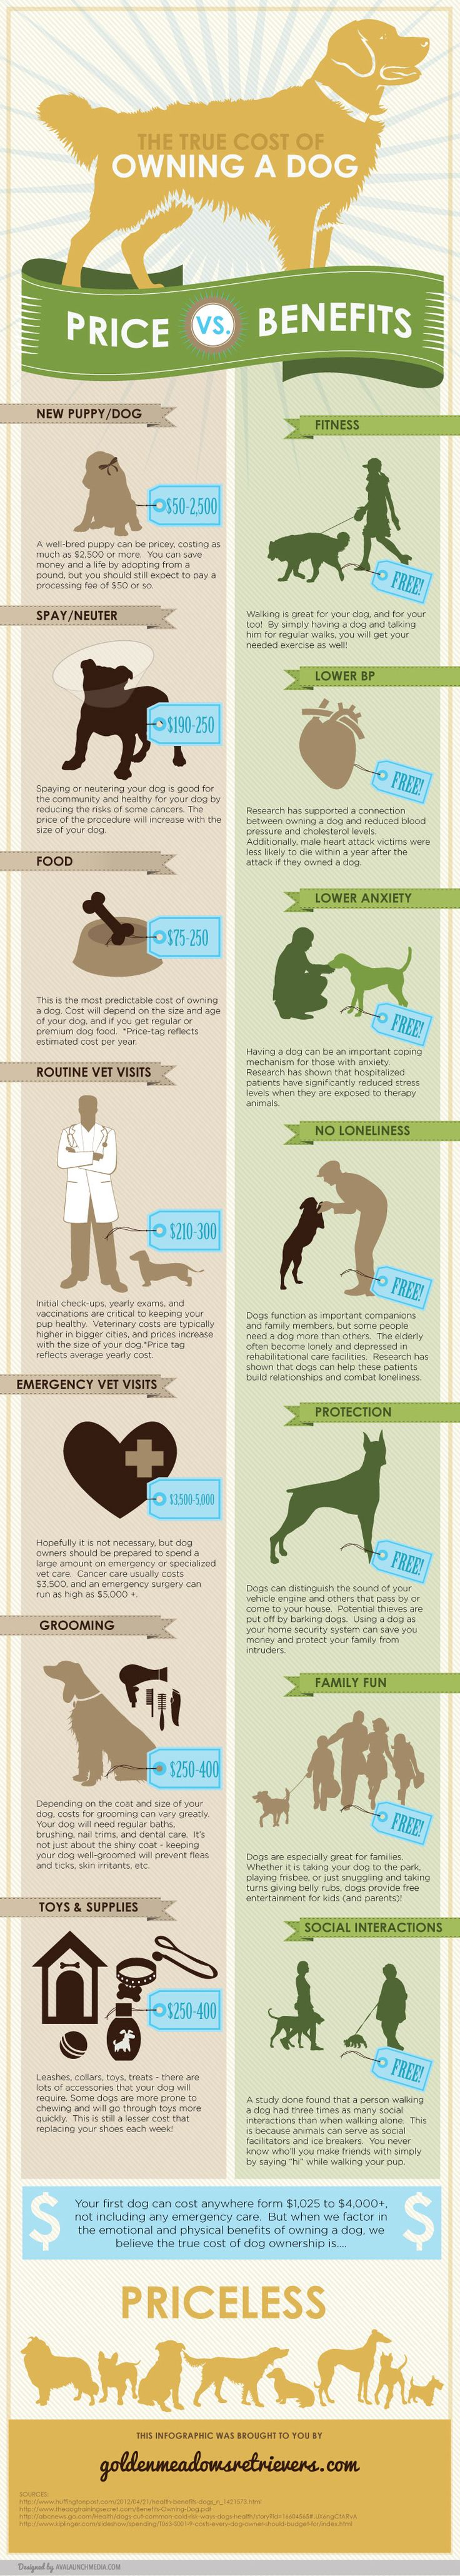 Cost vs Benefits of having a Dog.